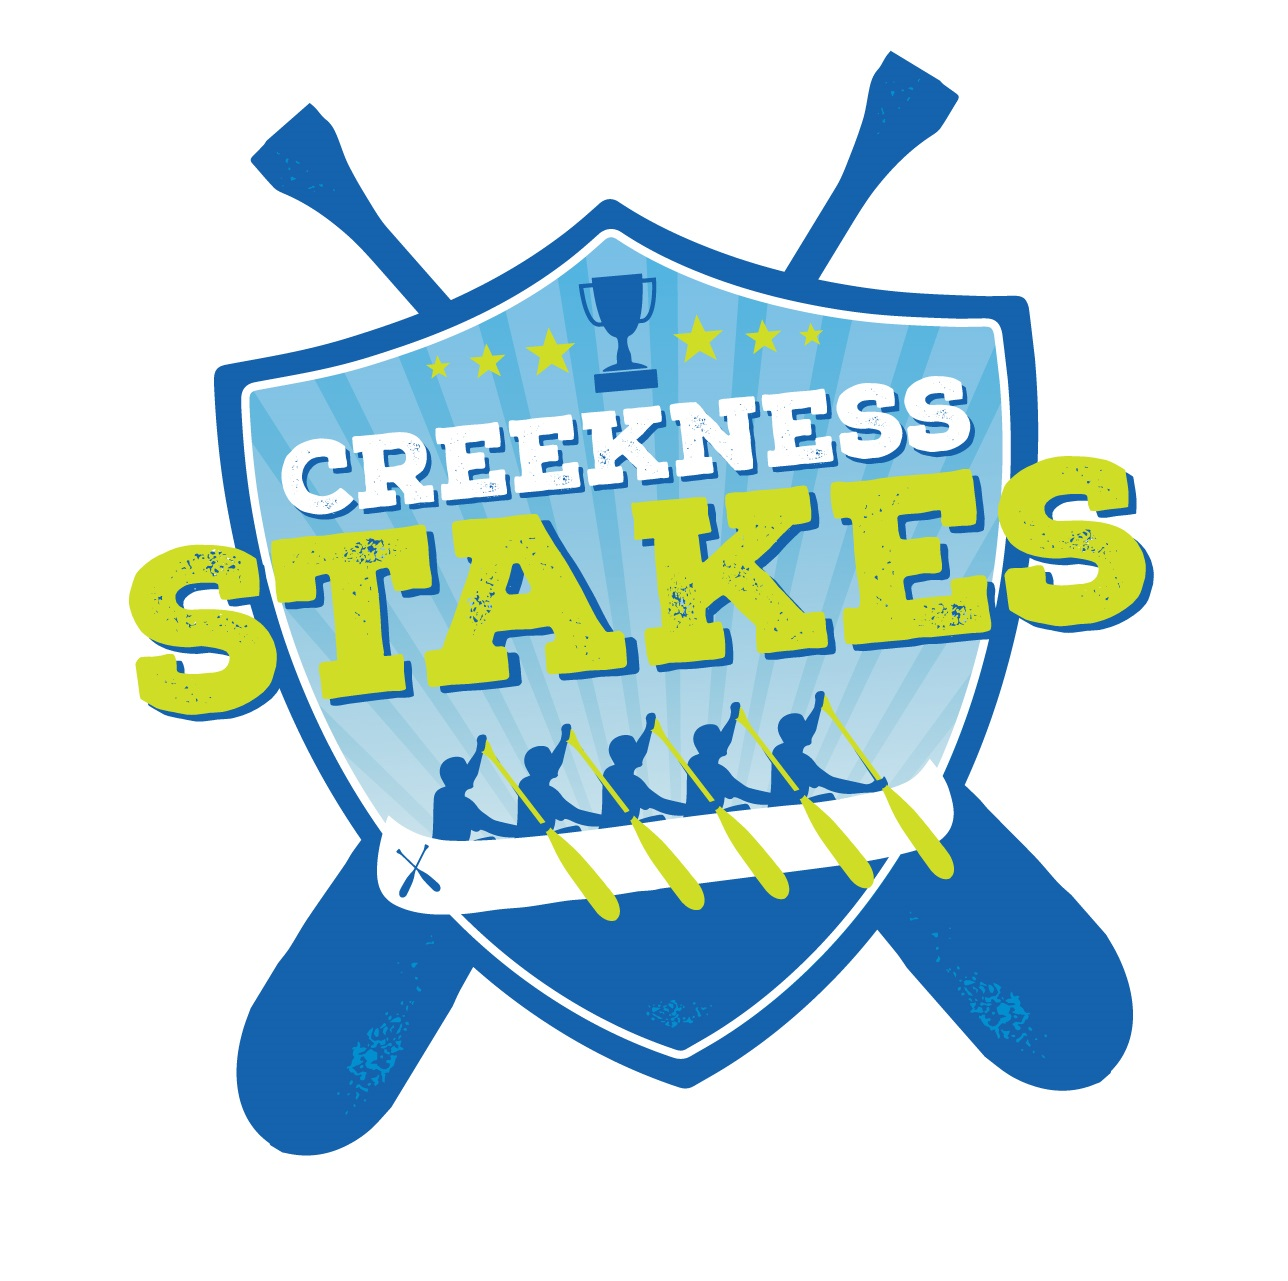 The Creekness Stakes